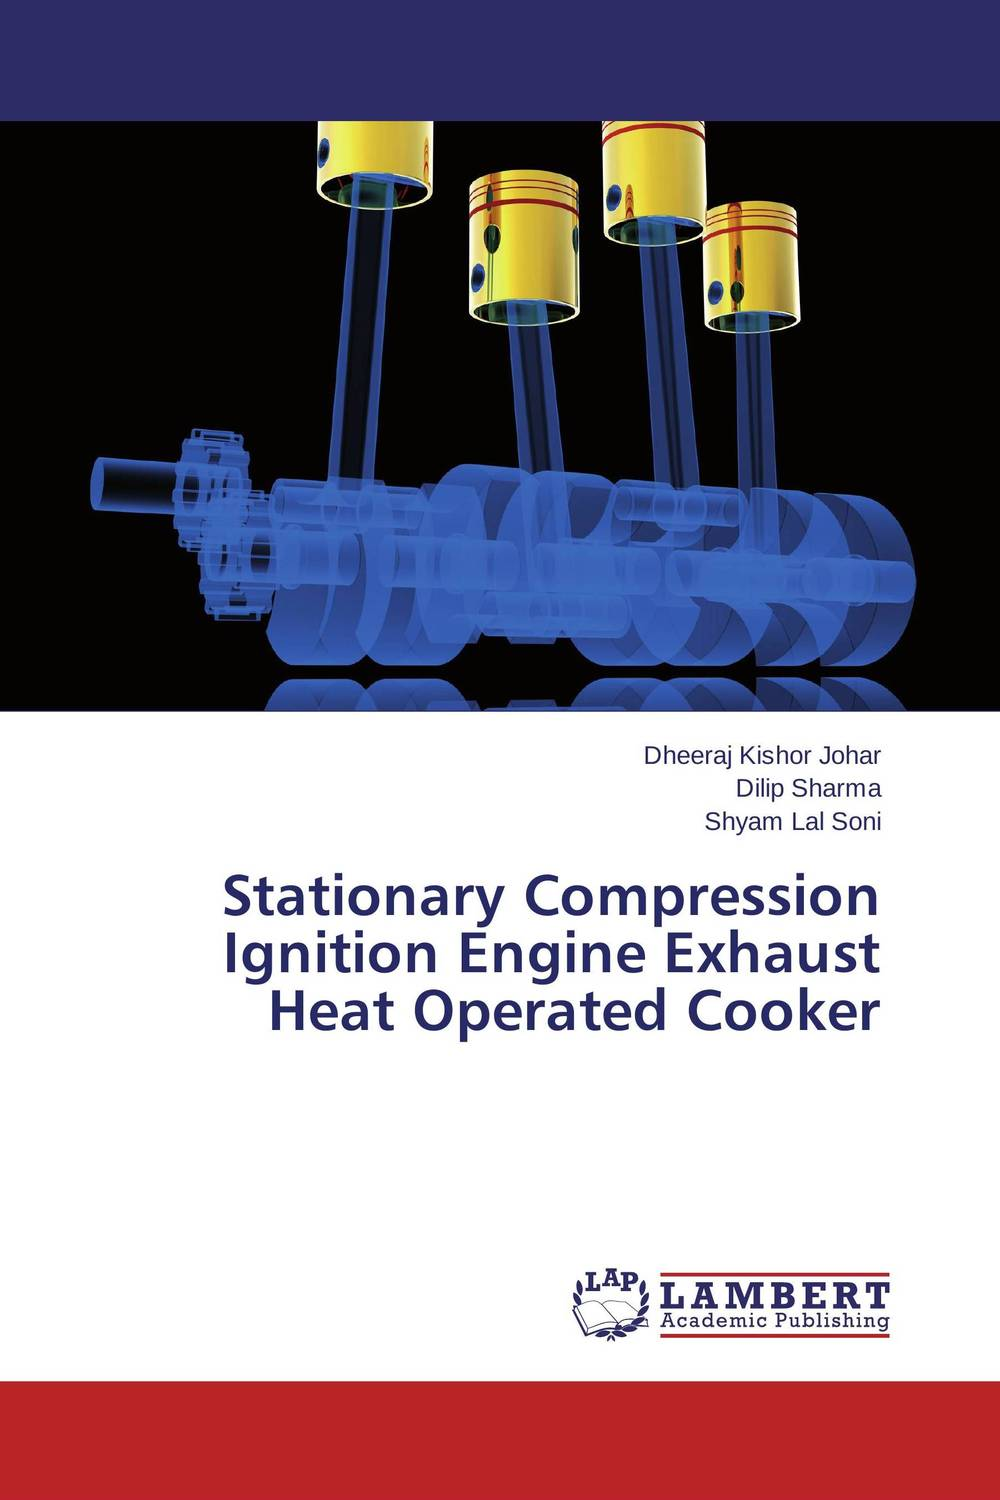 Stationary Compression Ignition Engine Exhaust Heat Operated Cooker waste heat recovery and energy conservation of arl distillation unit